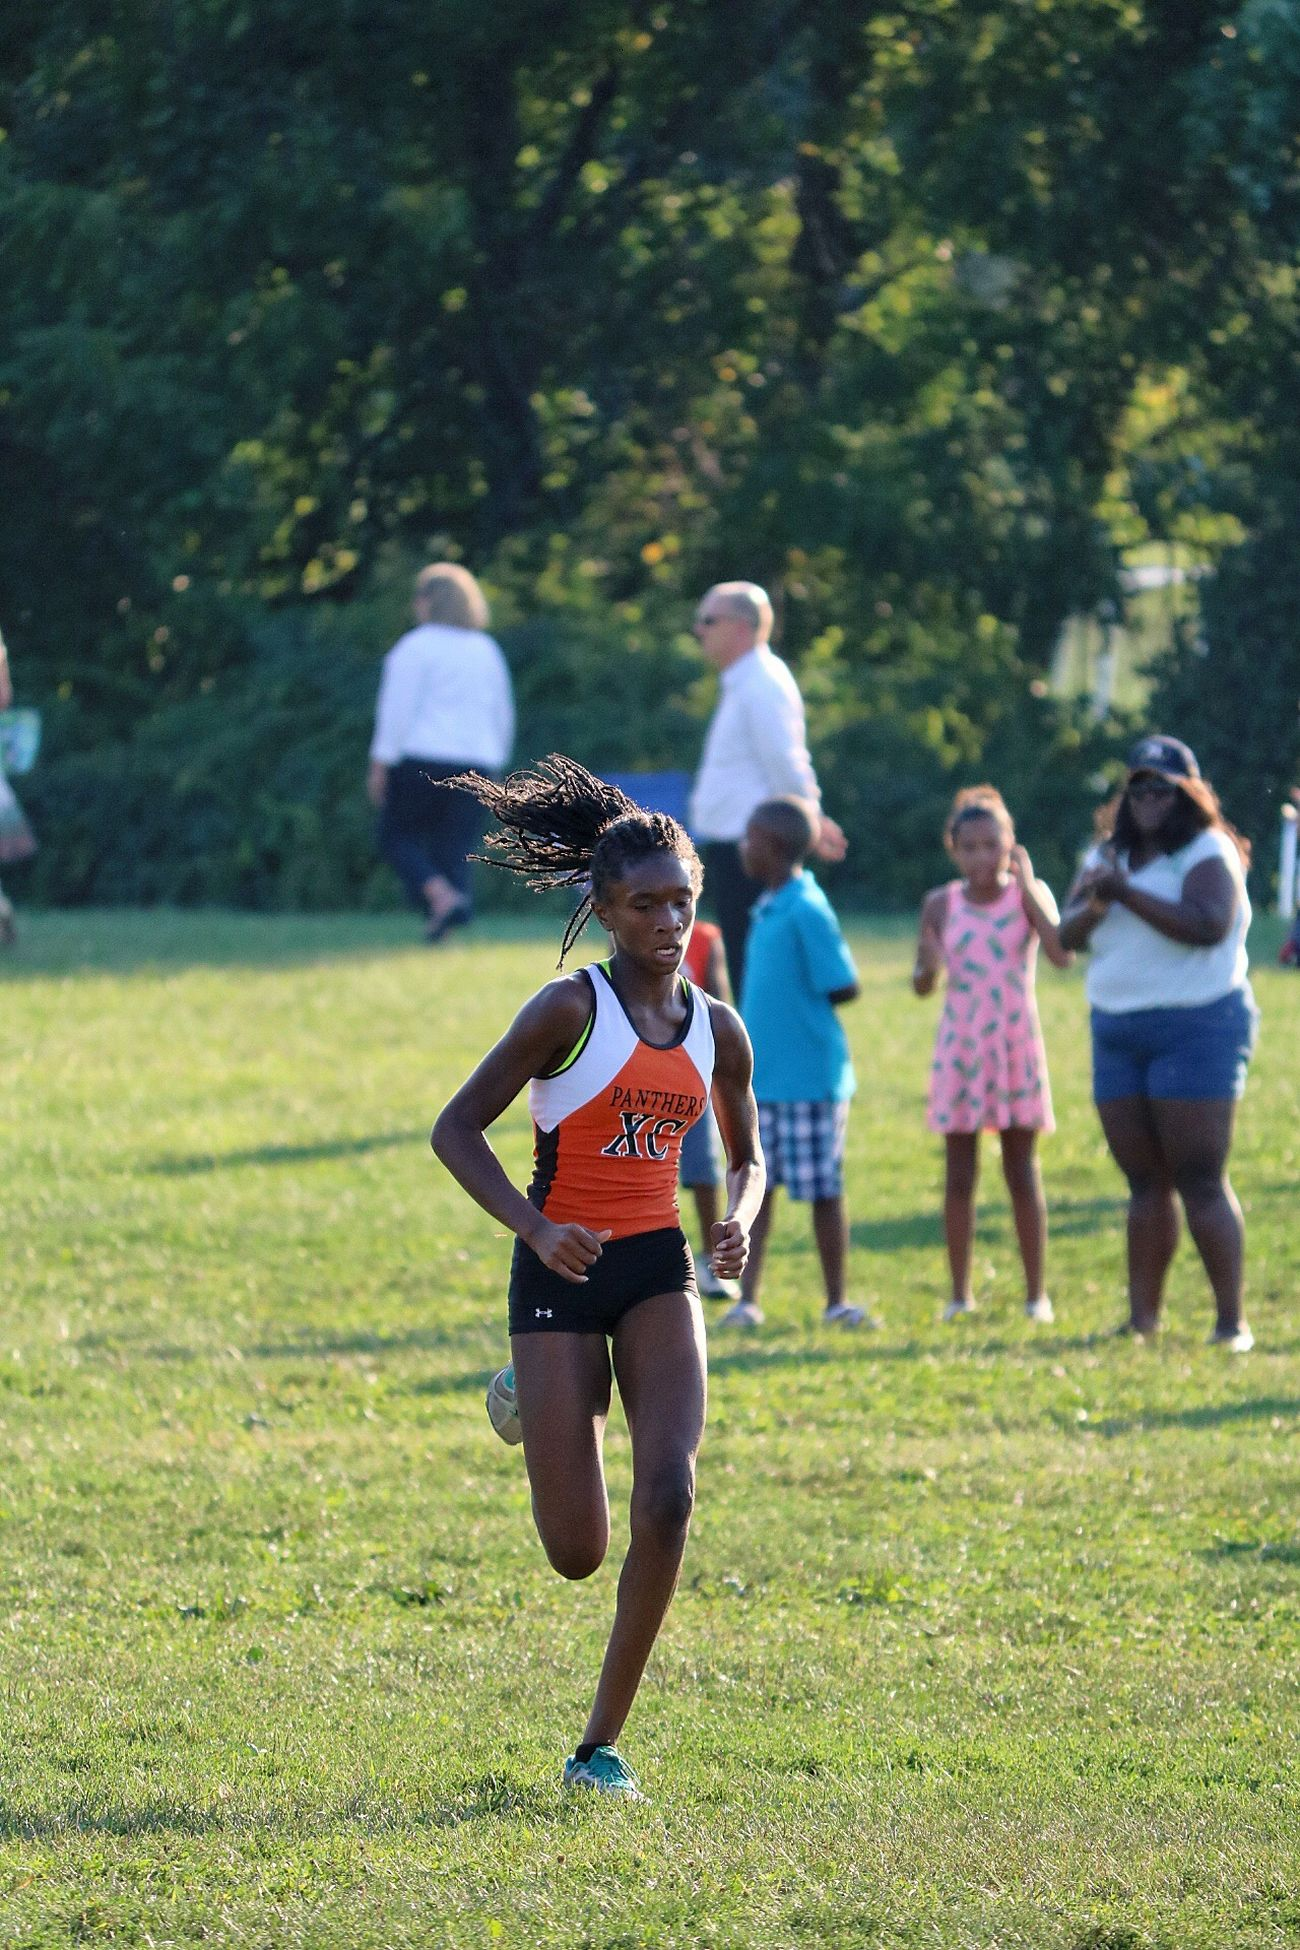 Person Grass Leisure Activity Full Length Lifestyles Enjoyment Focus On Foreground Fun EyeEm Gallery Event Cross Country The Color Of Sport Flygirls